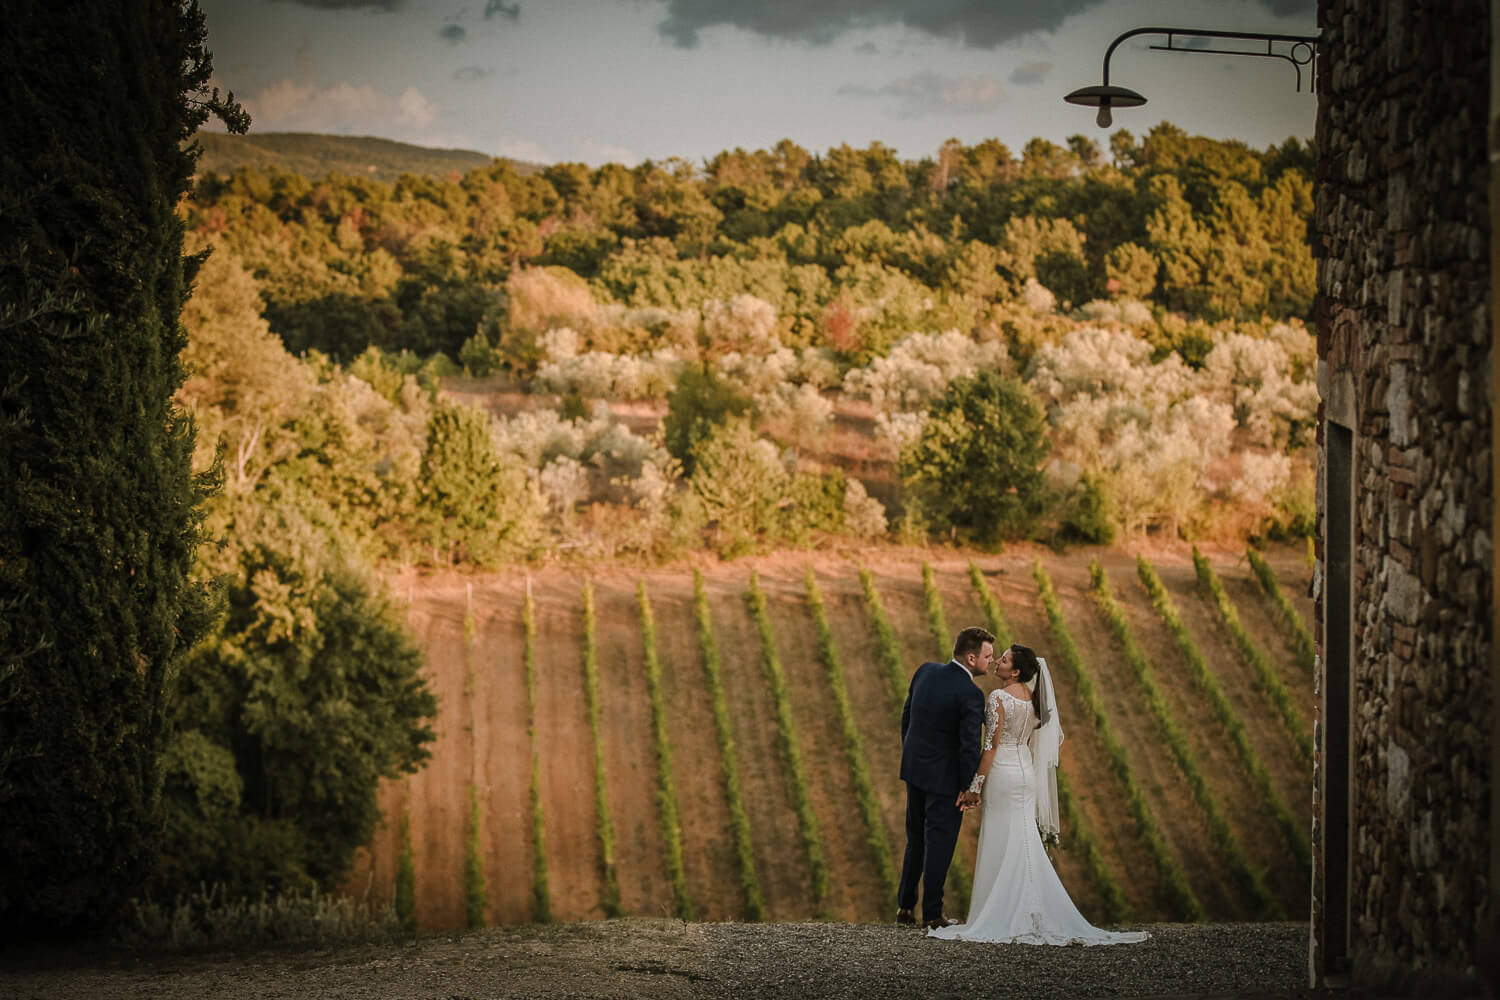 Tuscany wedding photography. Wedding destinations in Europe